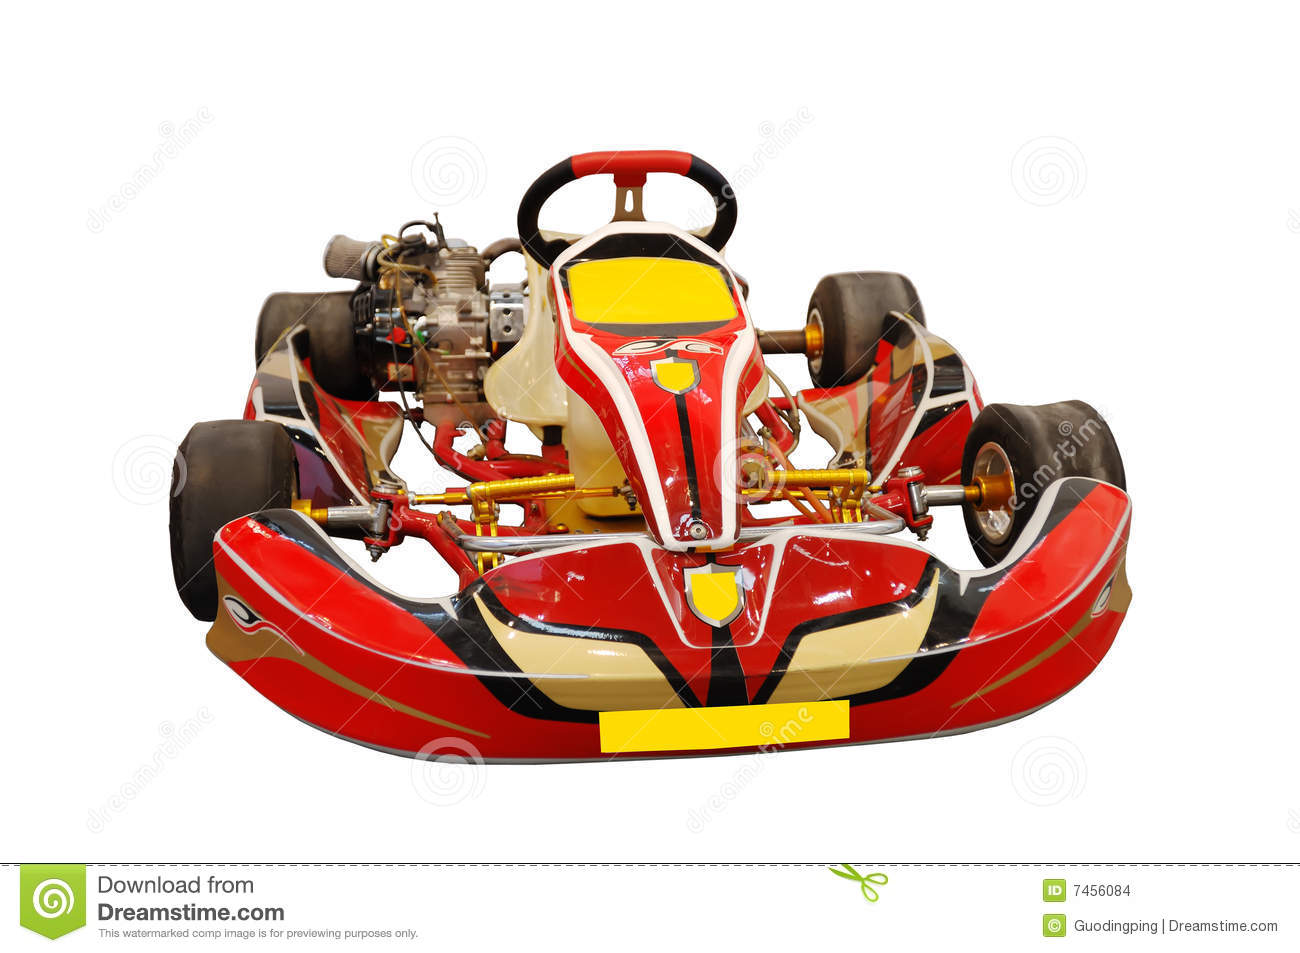 Kartred